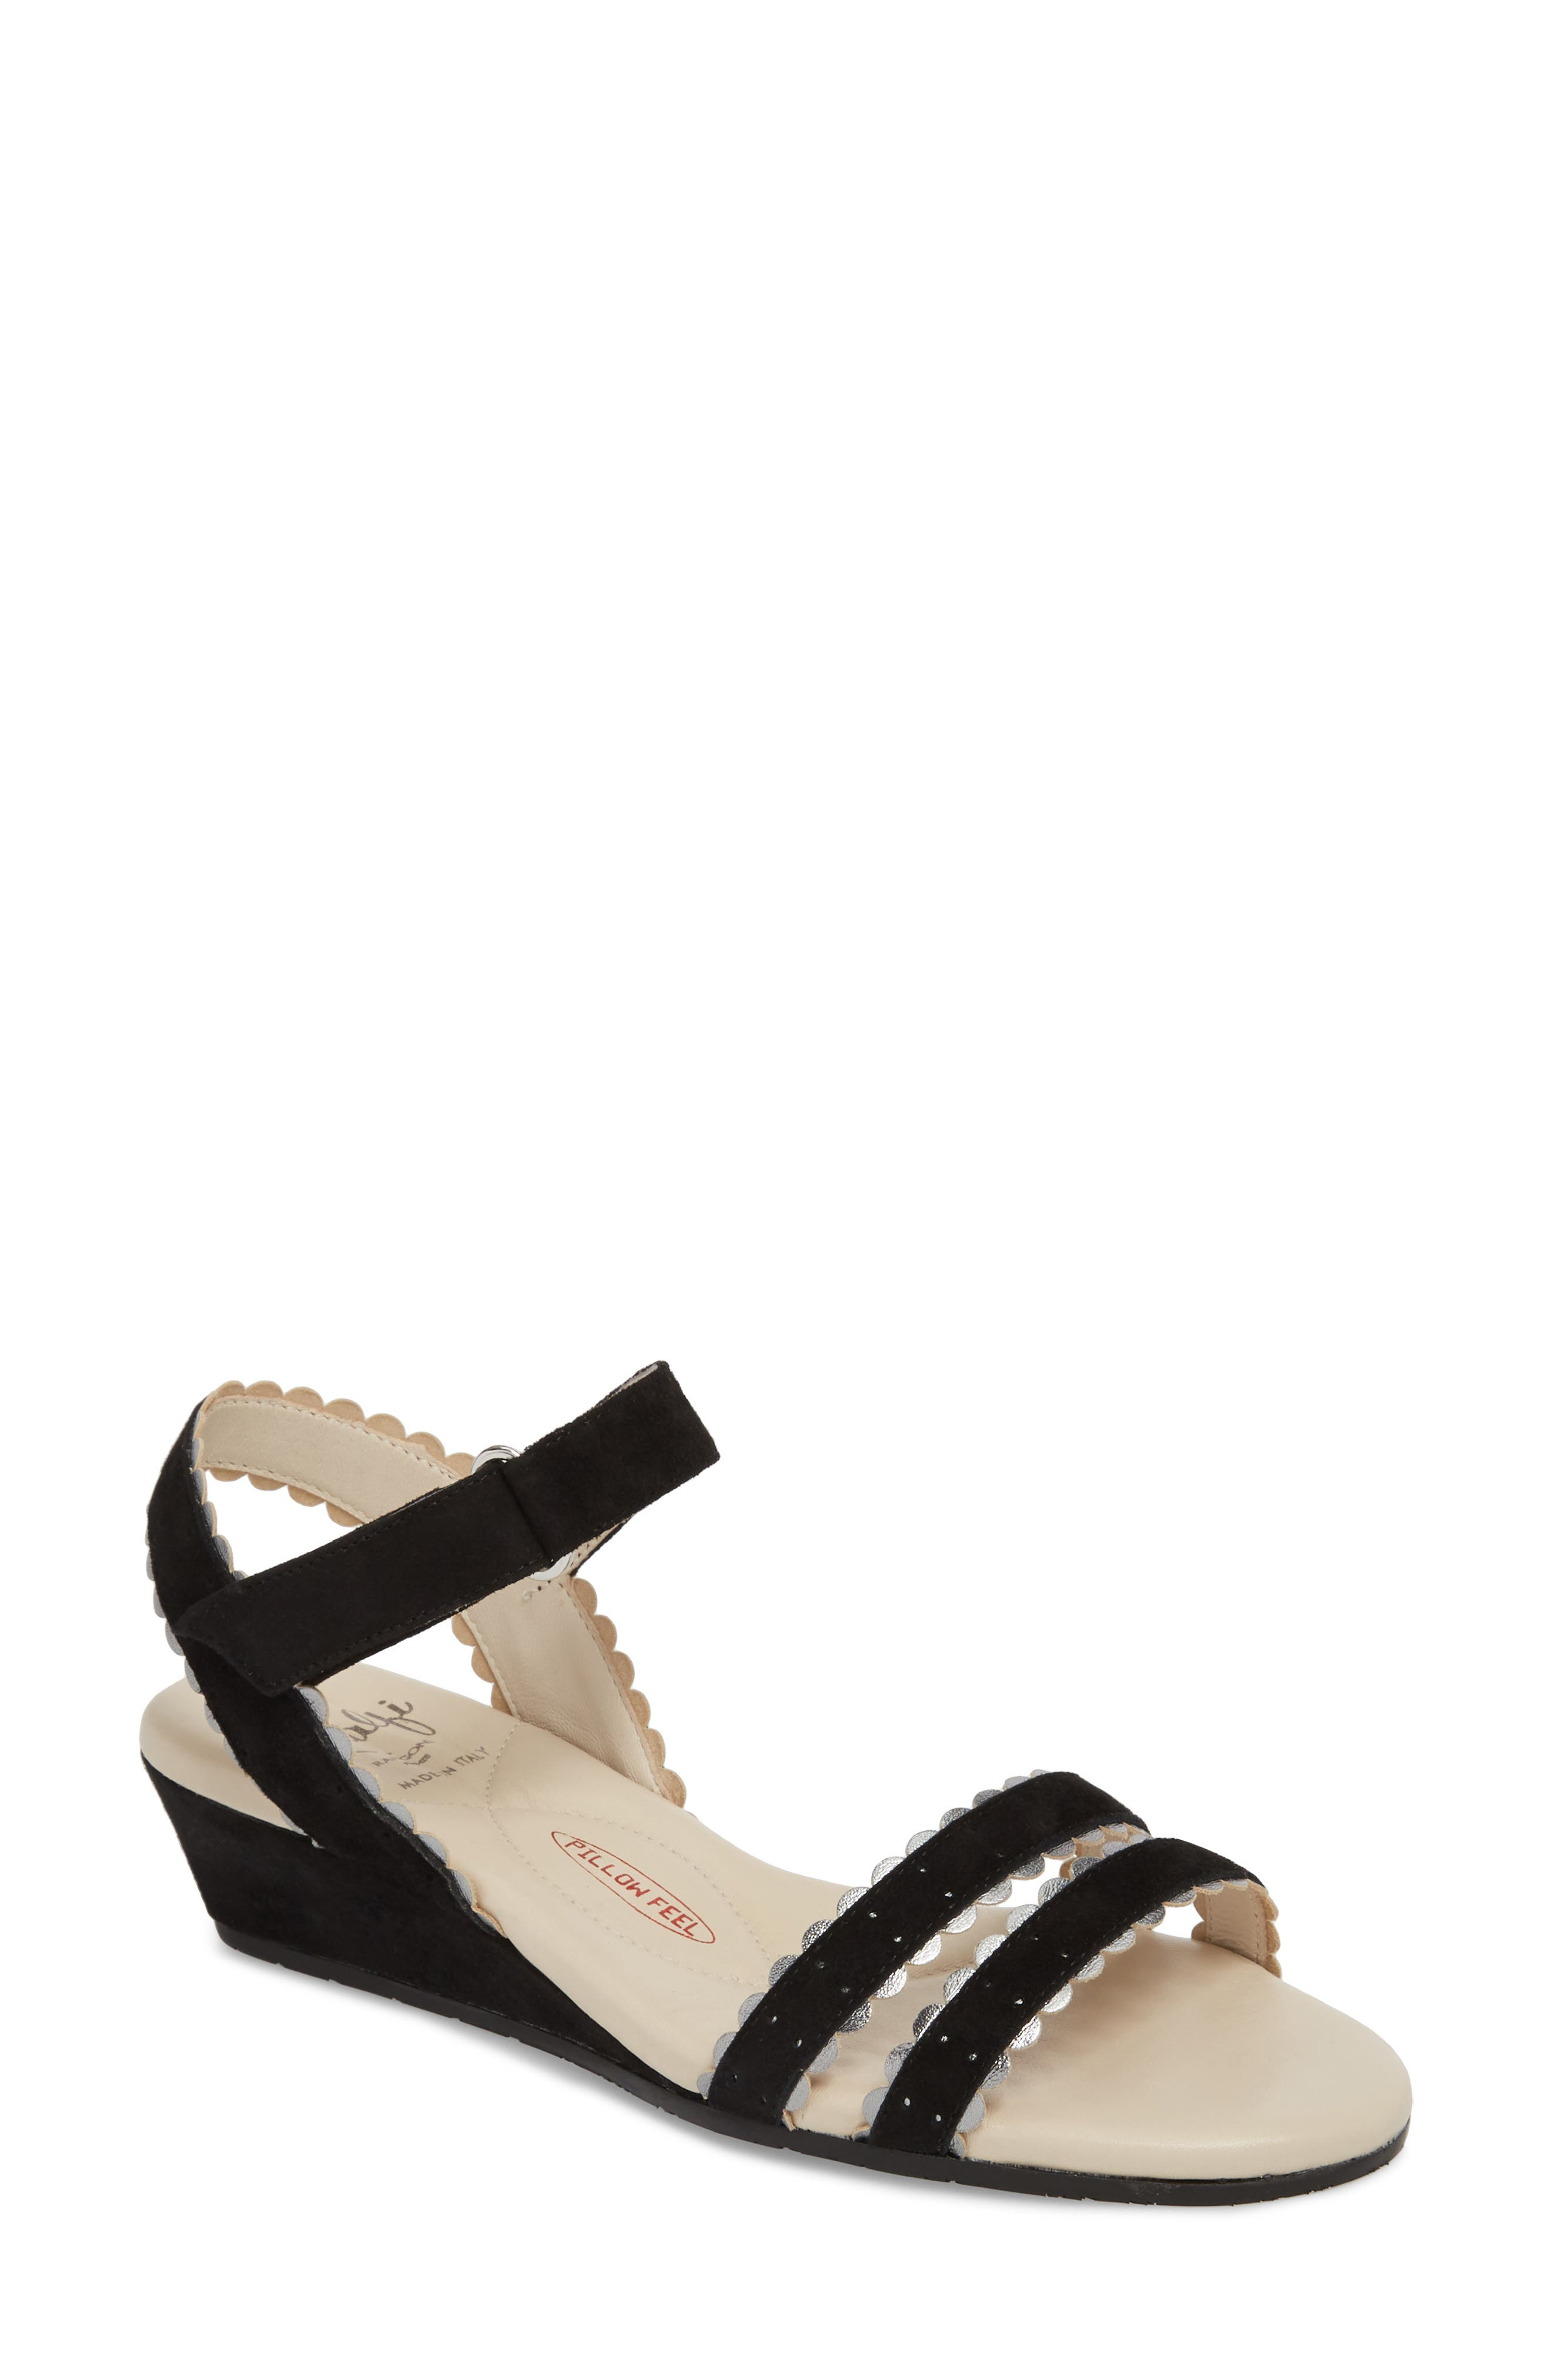 Messina Wedge Sandal,                             Main thumbnail 1, color,                             BLACK SUEDE